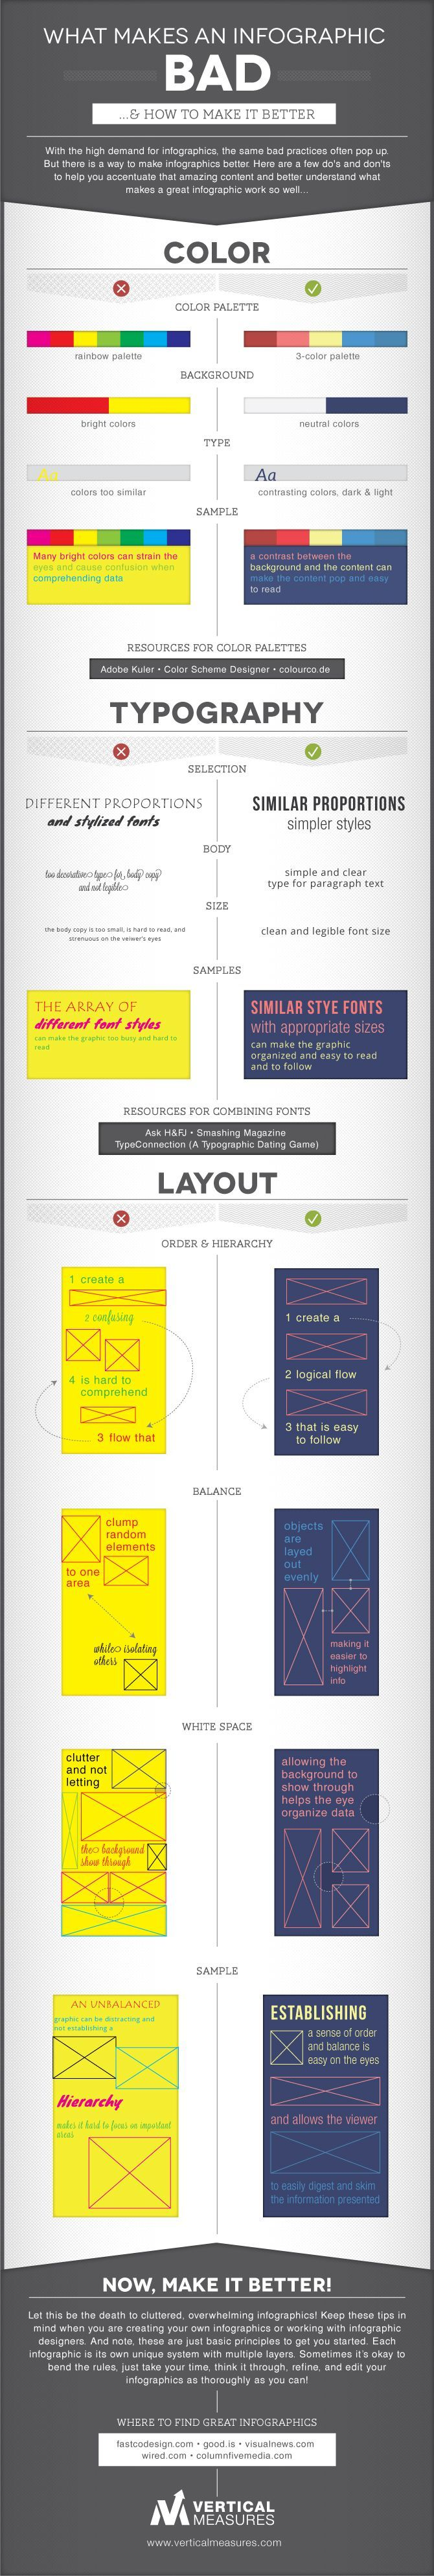 Design principles of a good info graphic (good design principles in general, really).